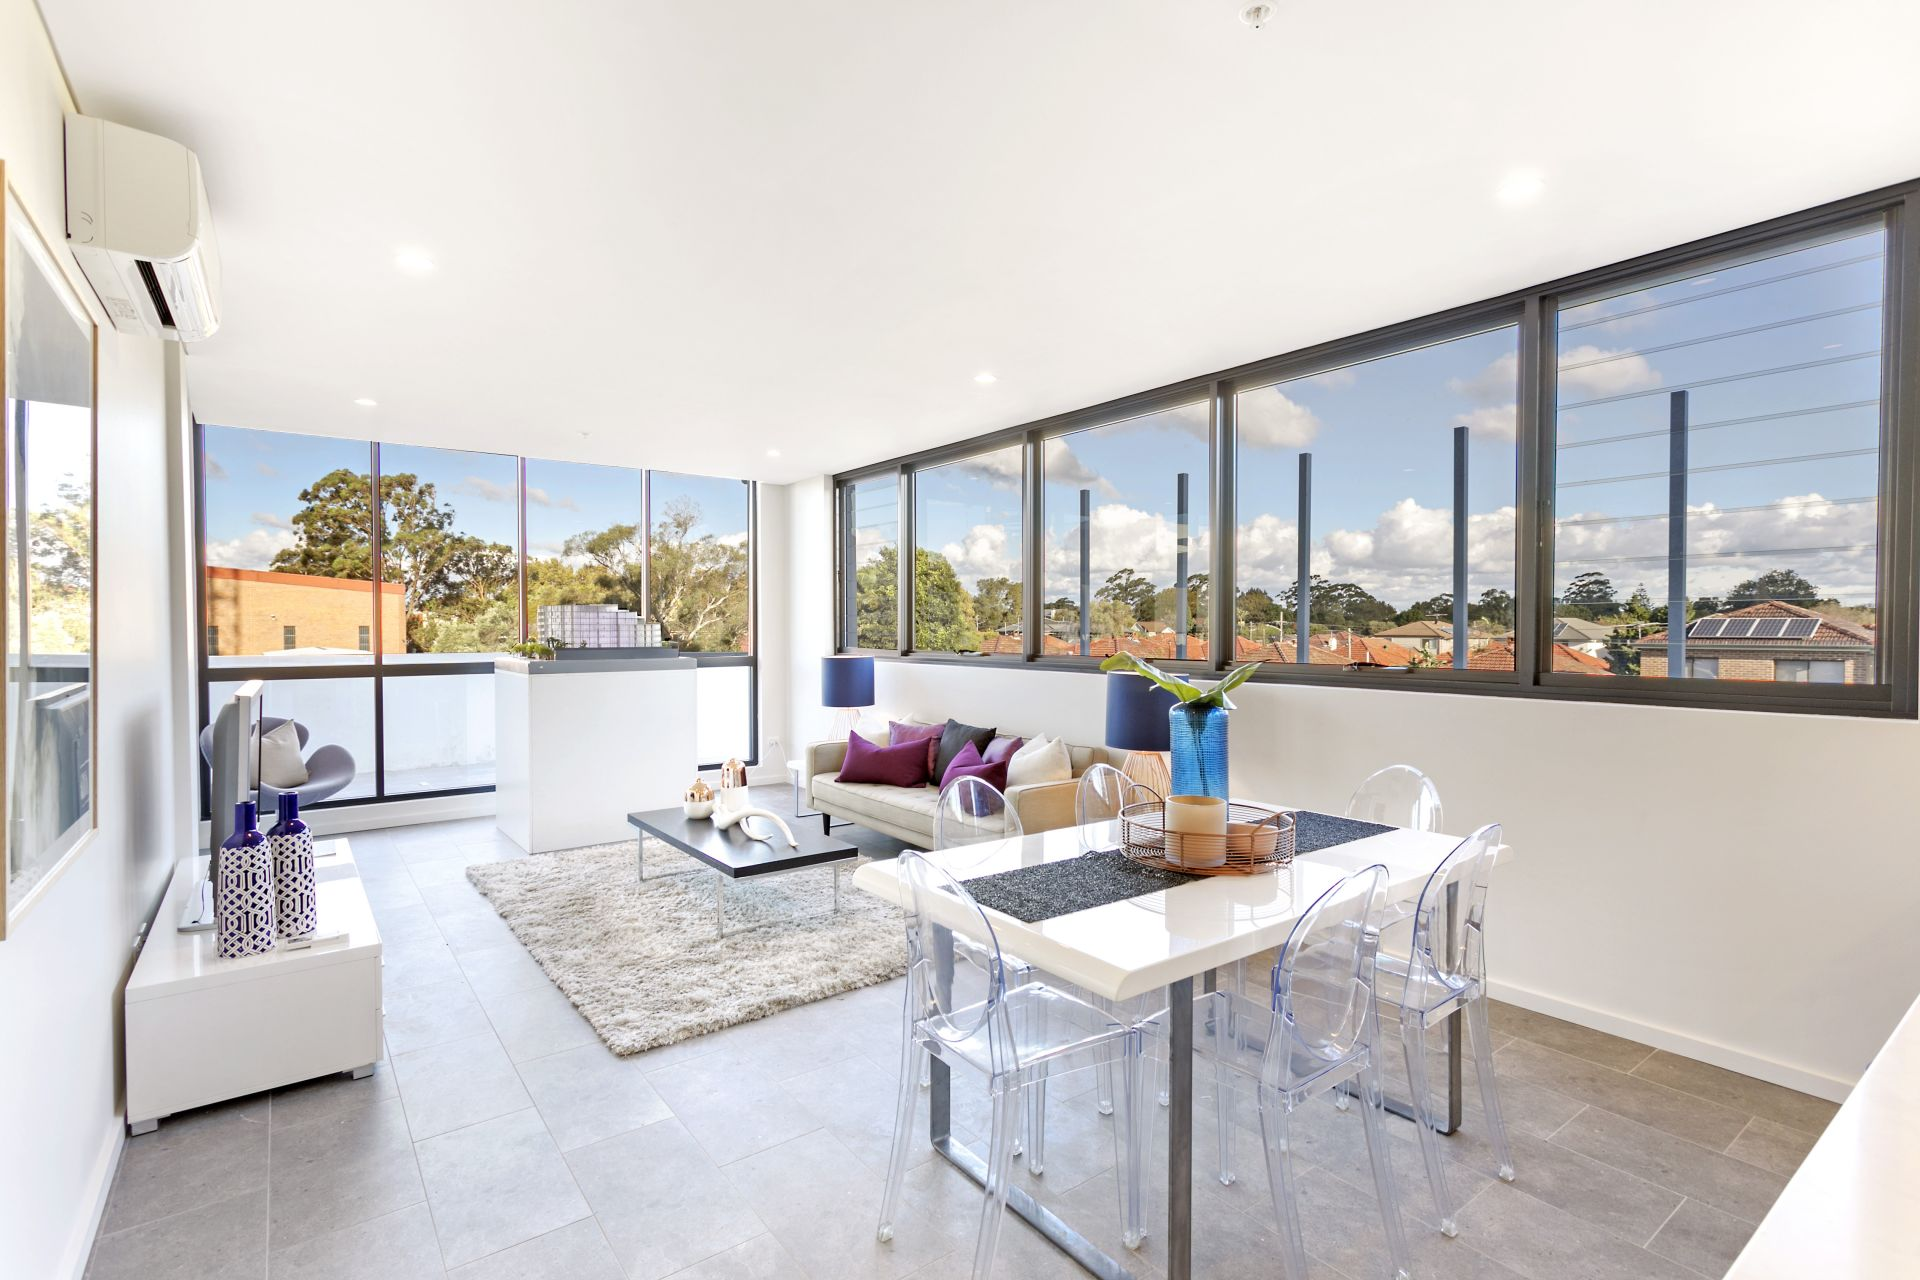 303 581 587 gardeners road mascot nsw 2020 apartment for sale